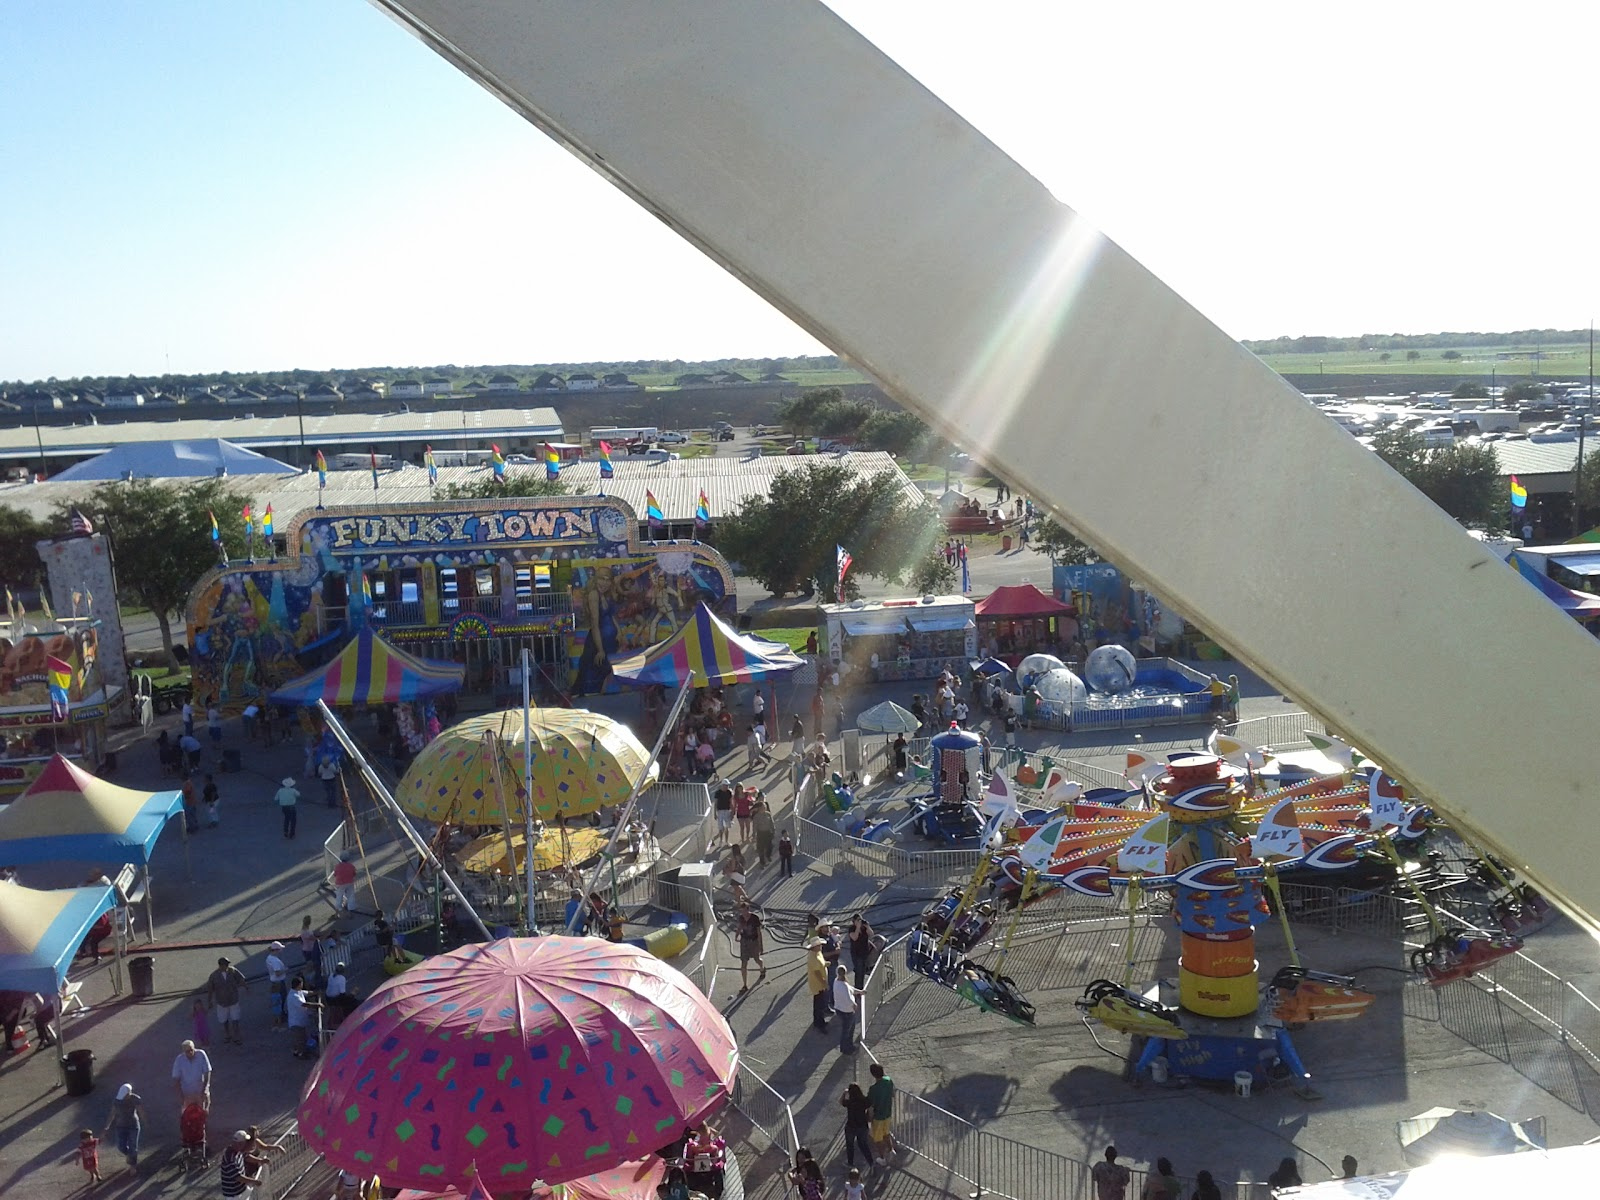 Fort Bend County Fair 2011 - IMG_20111001_174742.jpg